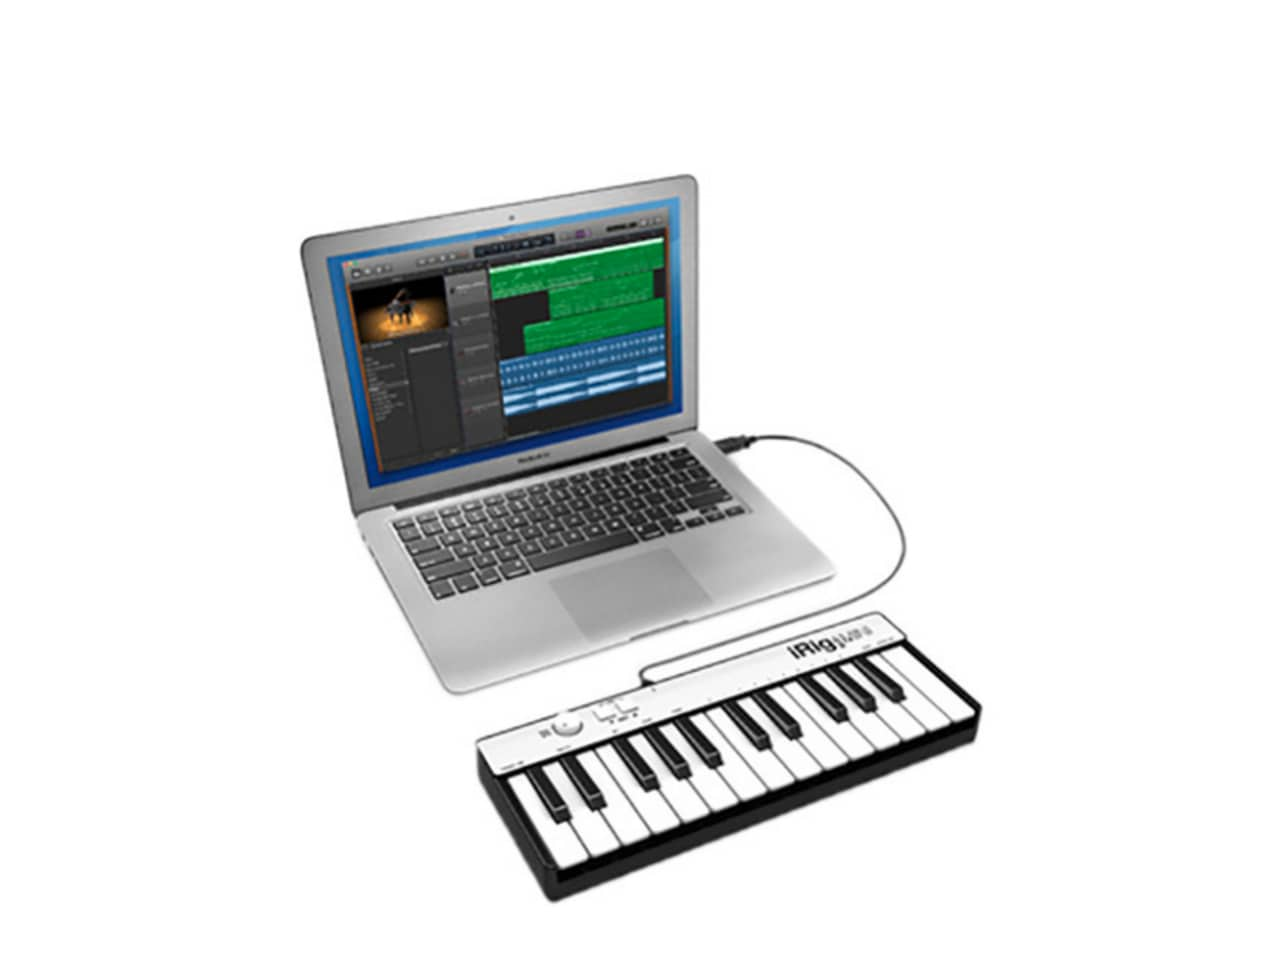 irig keys mini 25 key midi controller for iphone ipad or reverb. Black Bedroom Furniture Sets. Home Design Ideas